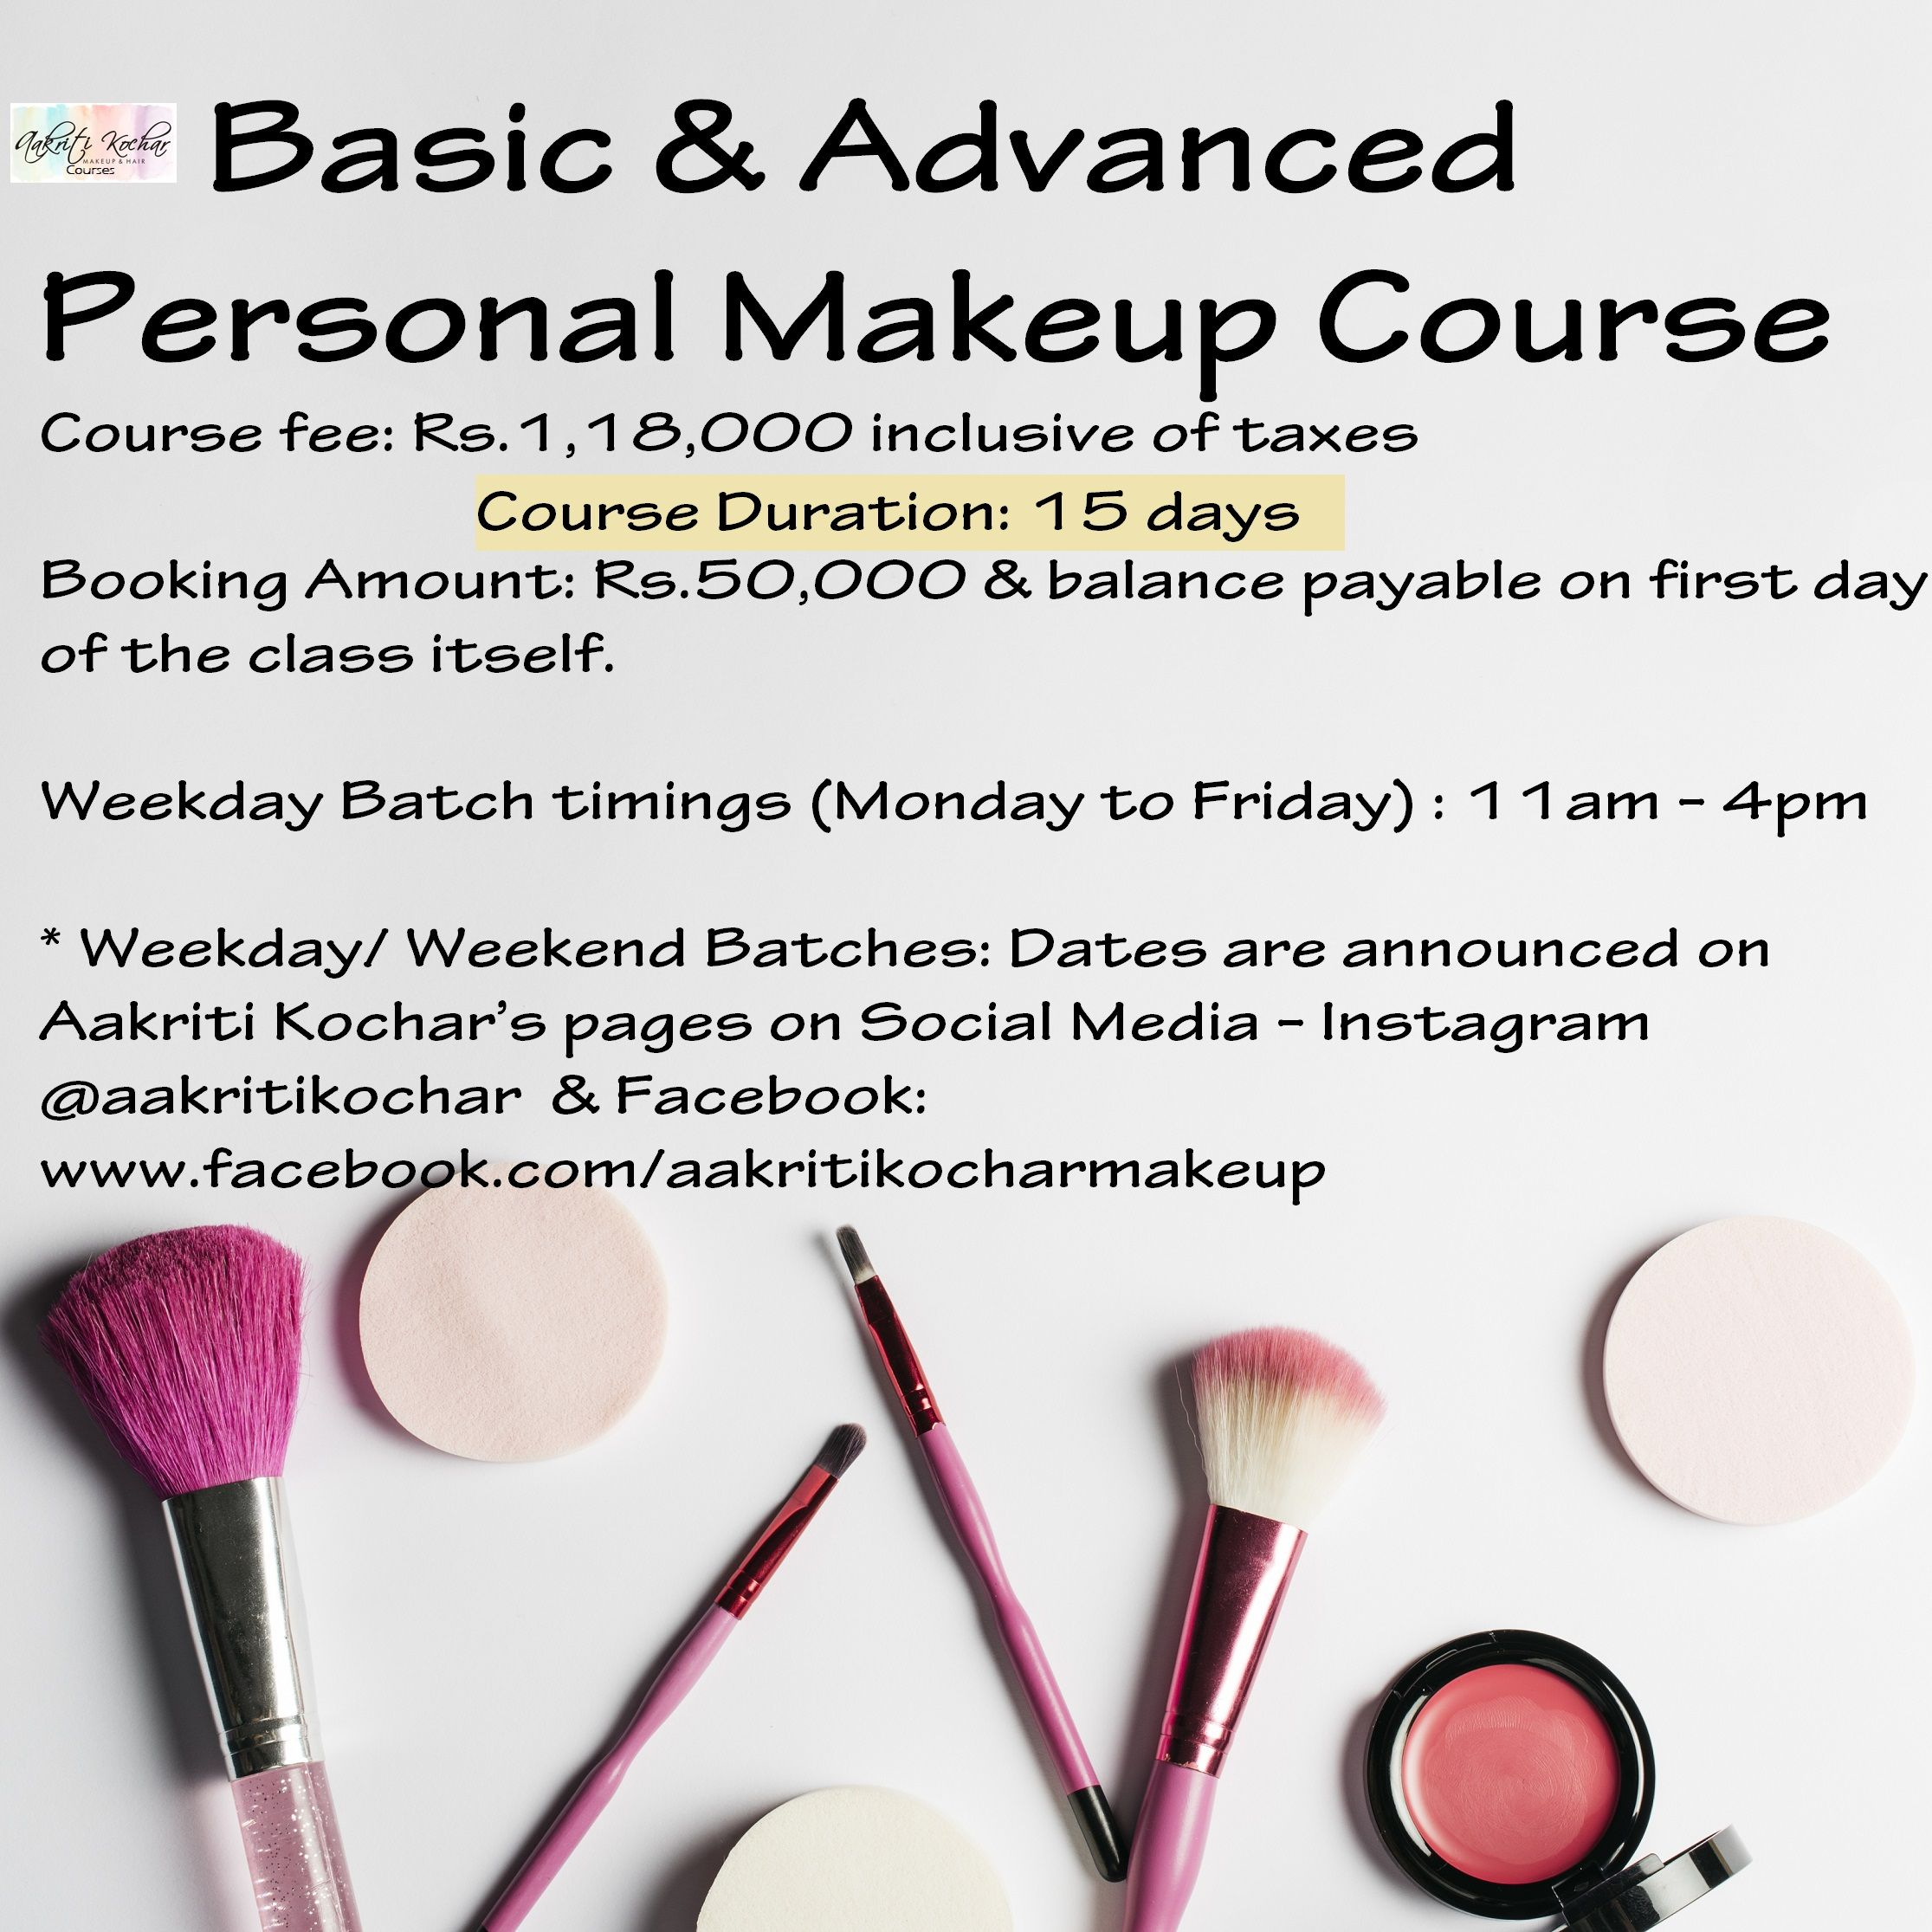 Basic and Advanced Personal Makeup Course Details